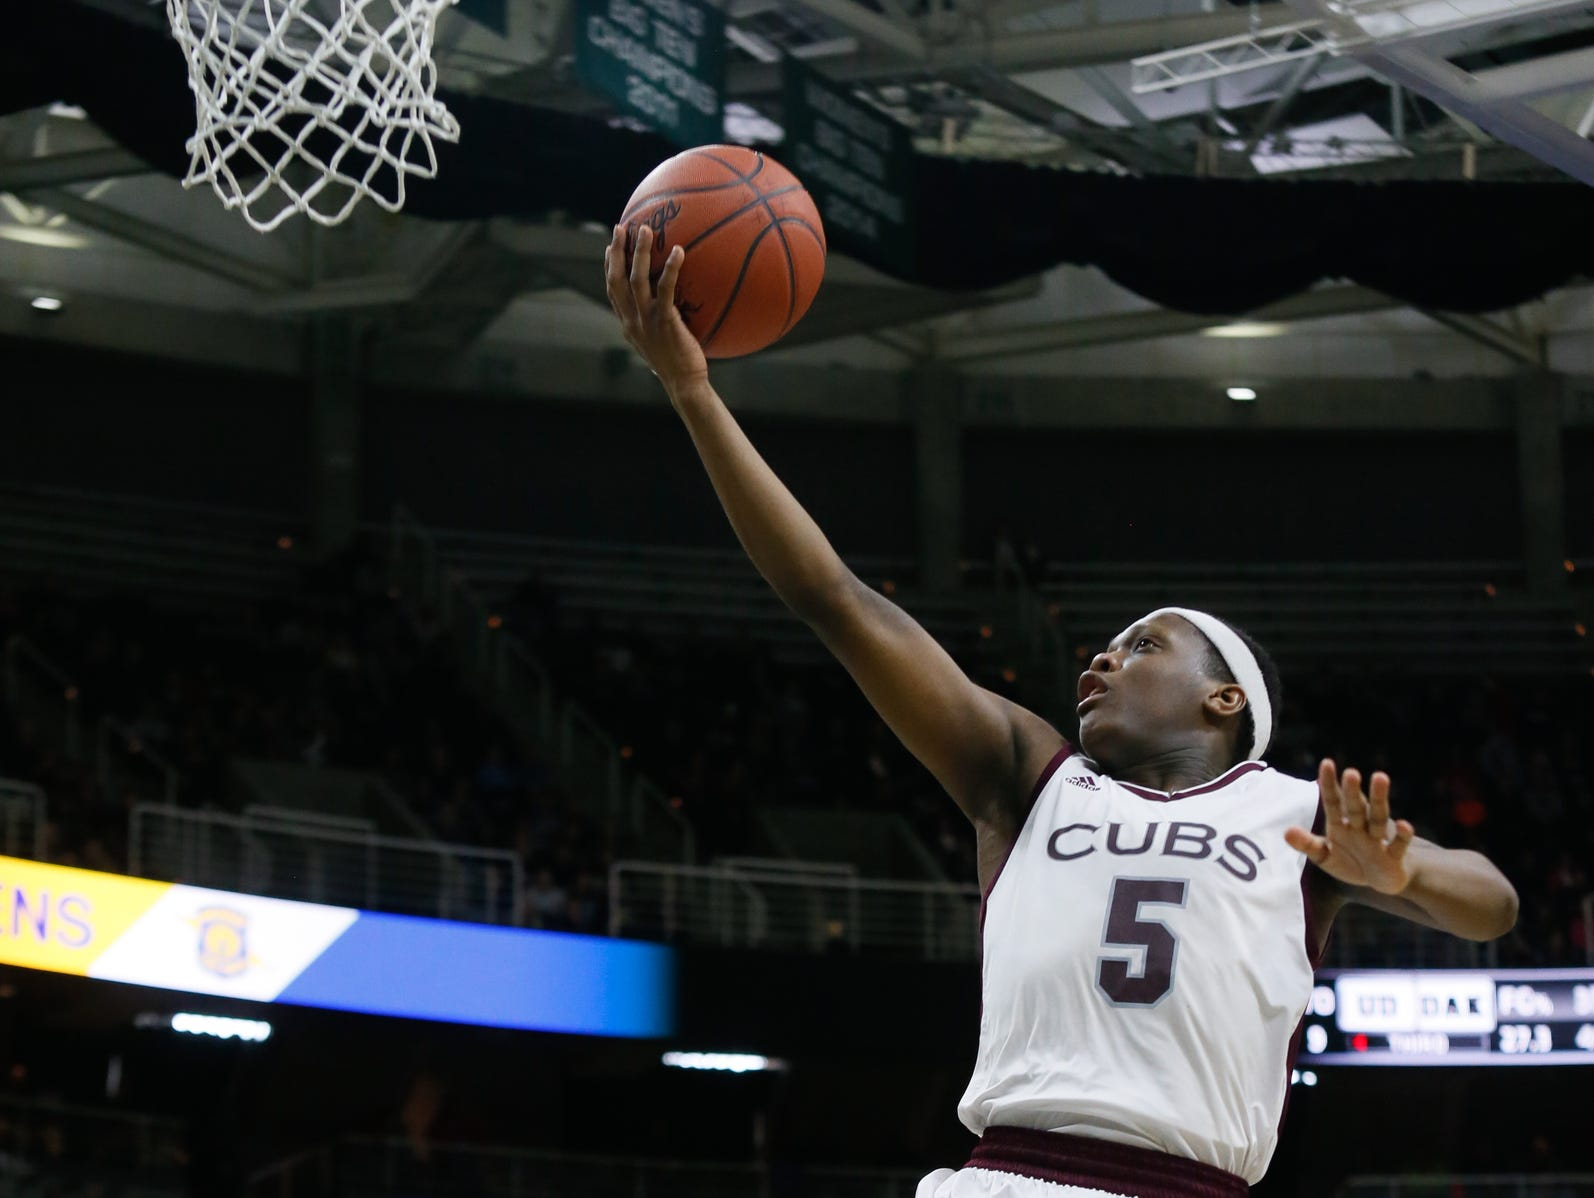 Detroit U-D Jesuit's Cassius Winston makes a layup against Macomb Dakota during the MHSAA boys basketball Class A semifinals at the Breslin Center in East Lansing, Mich. on Friday, March 25, 2016.